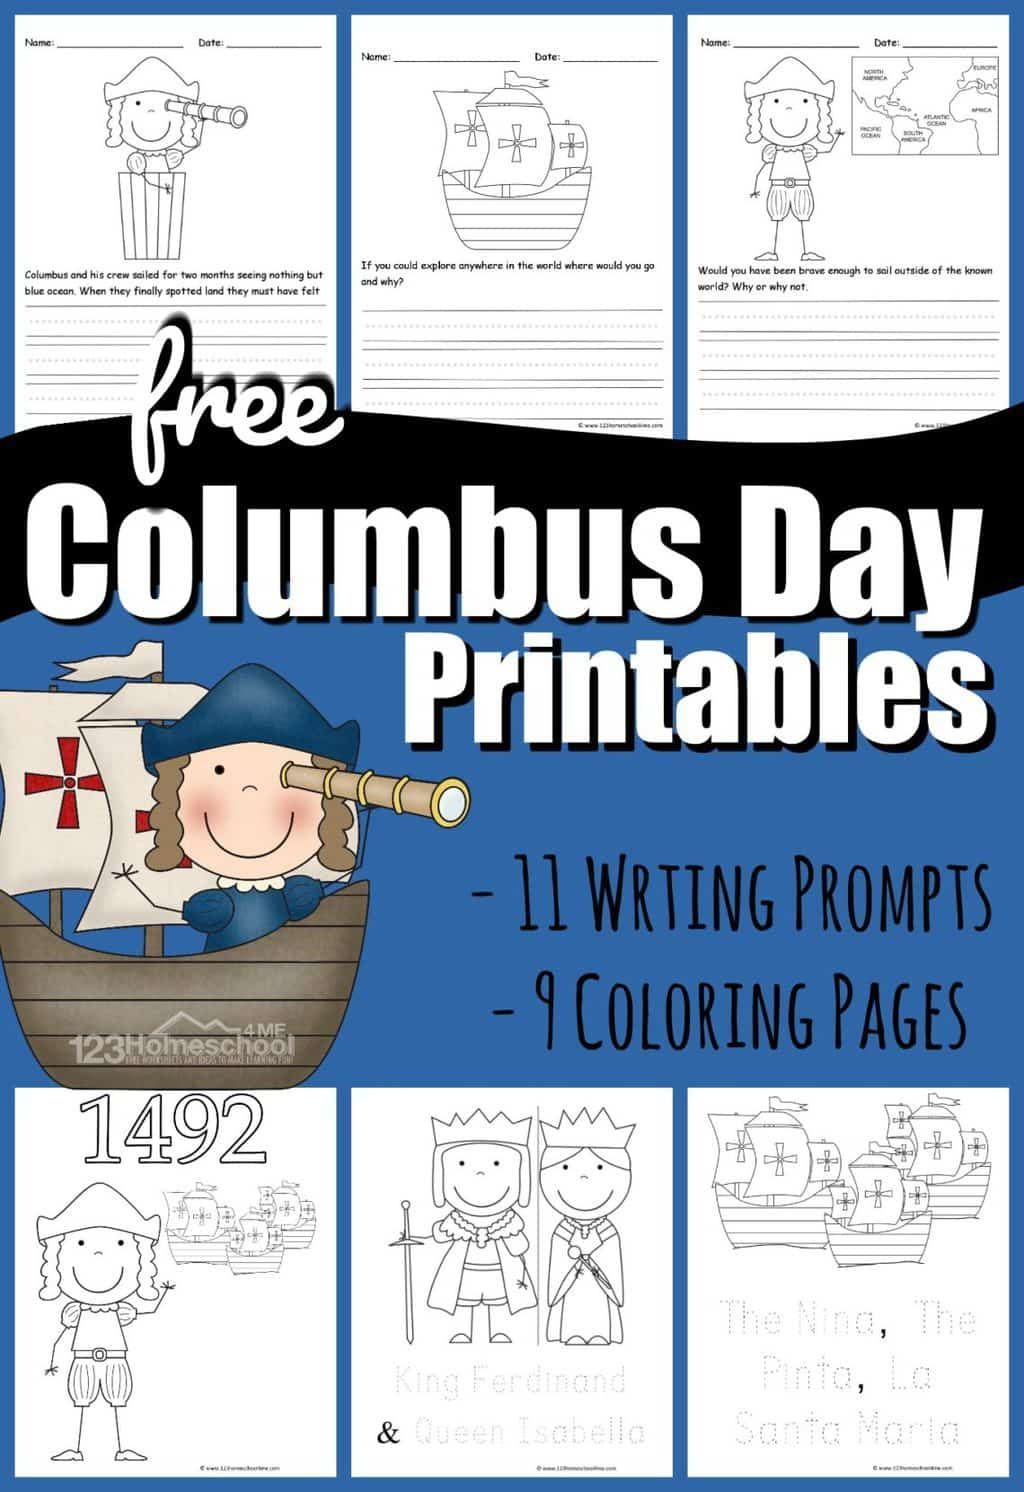 Free Columbus Day Printables In 2020 Writing Prompts For Kids Columbus Day Christopher Columbus Activities